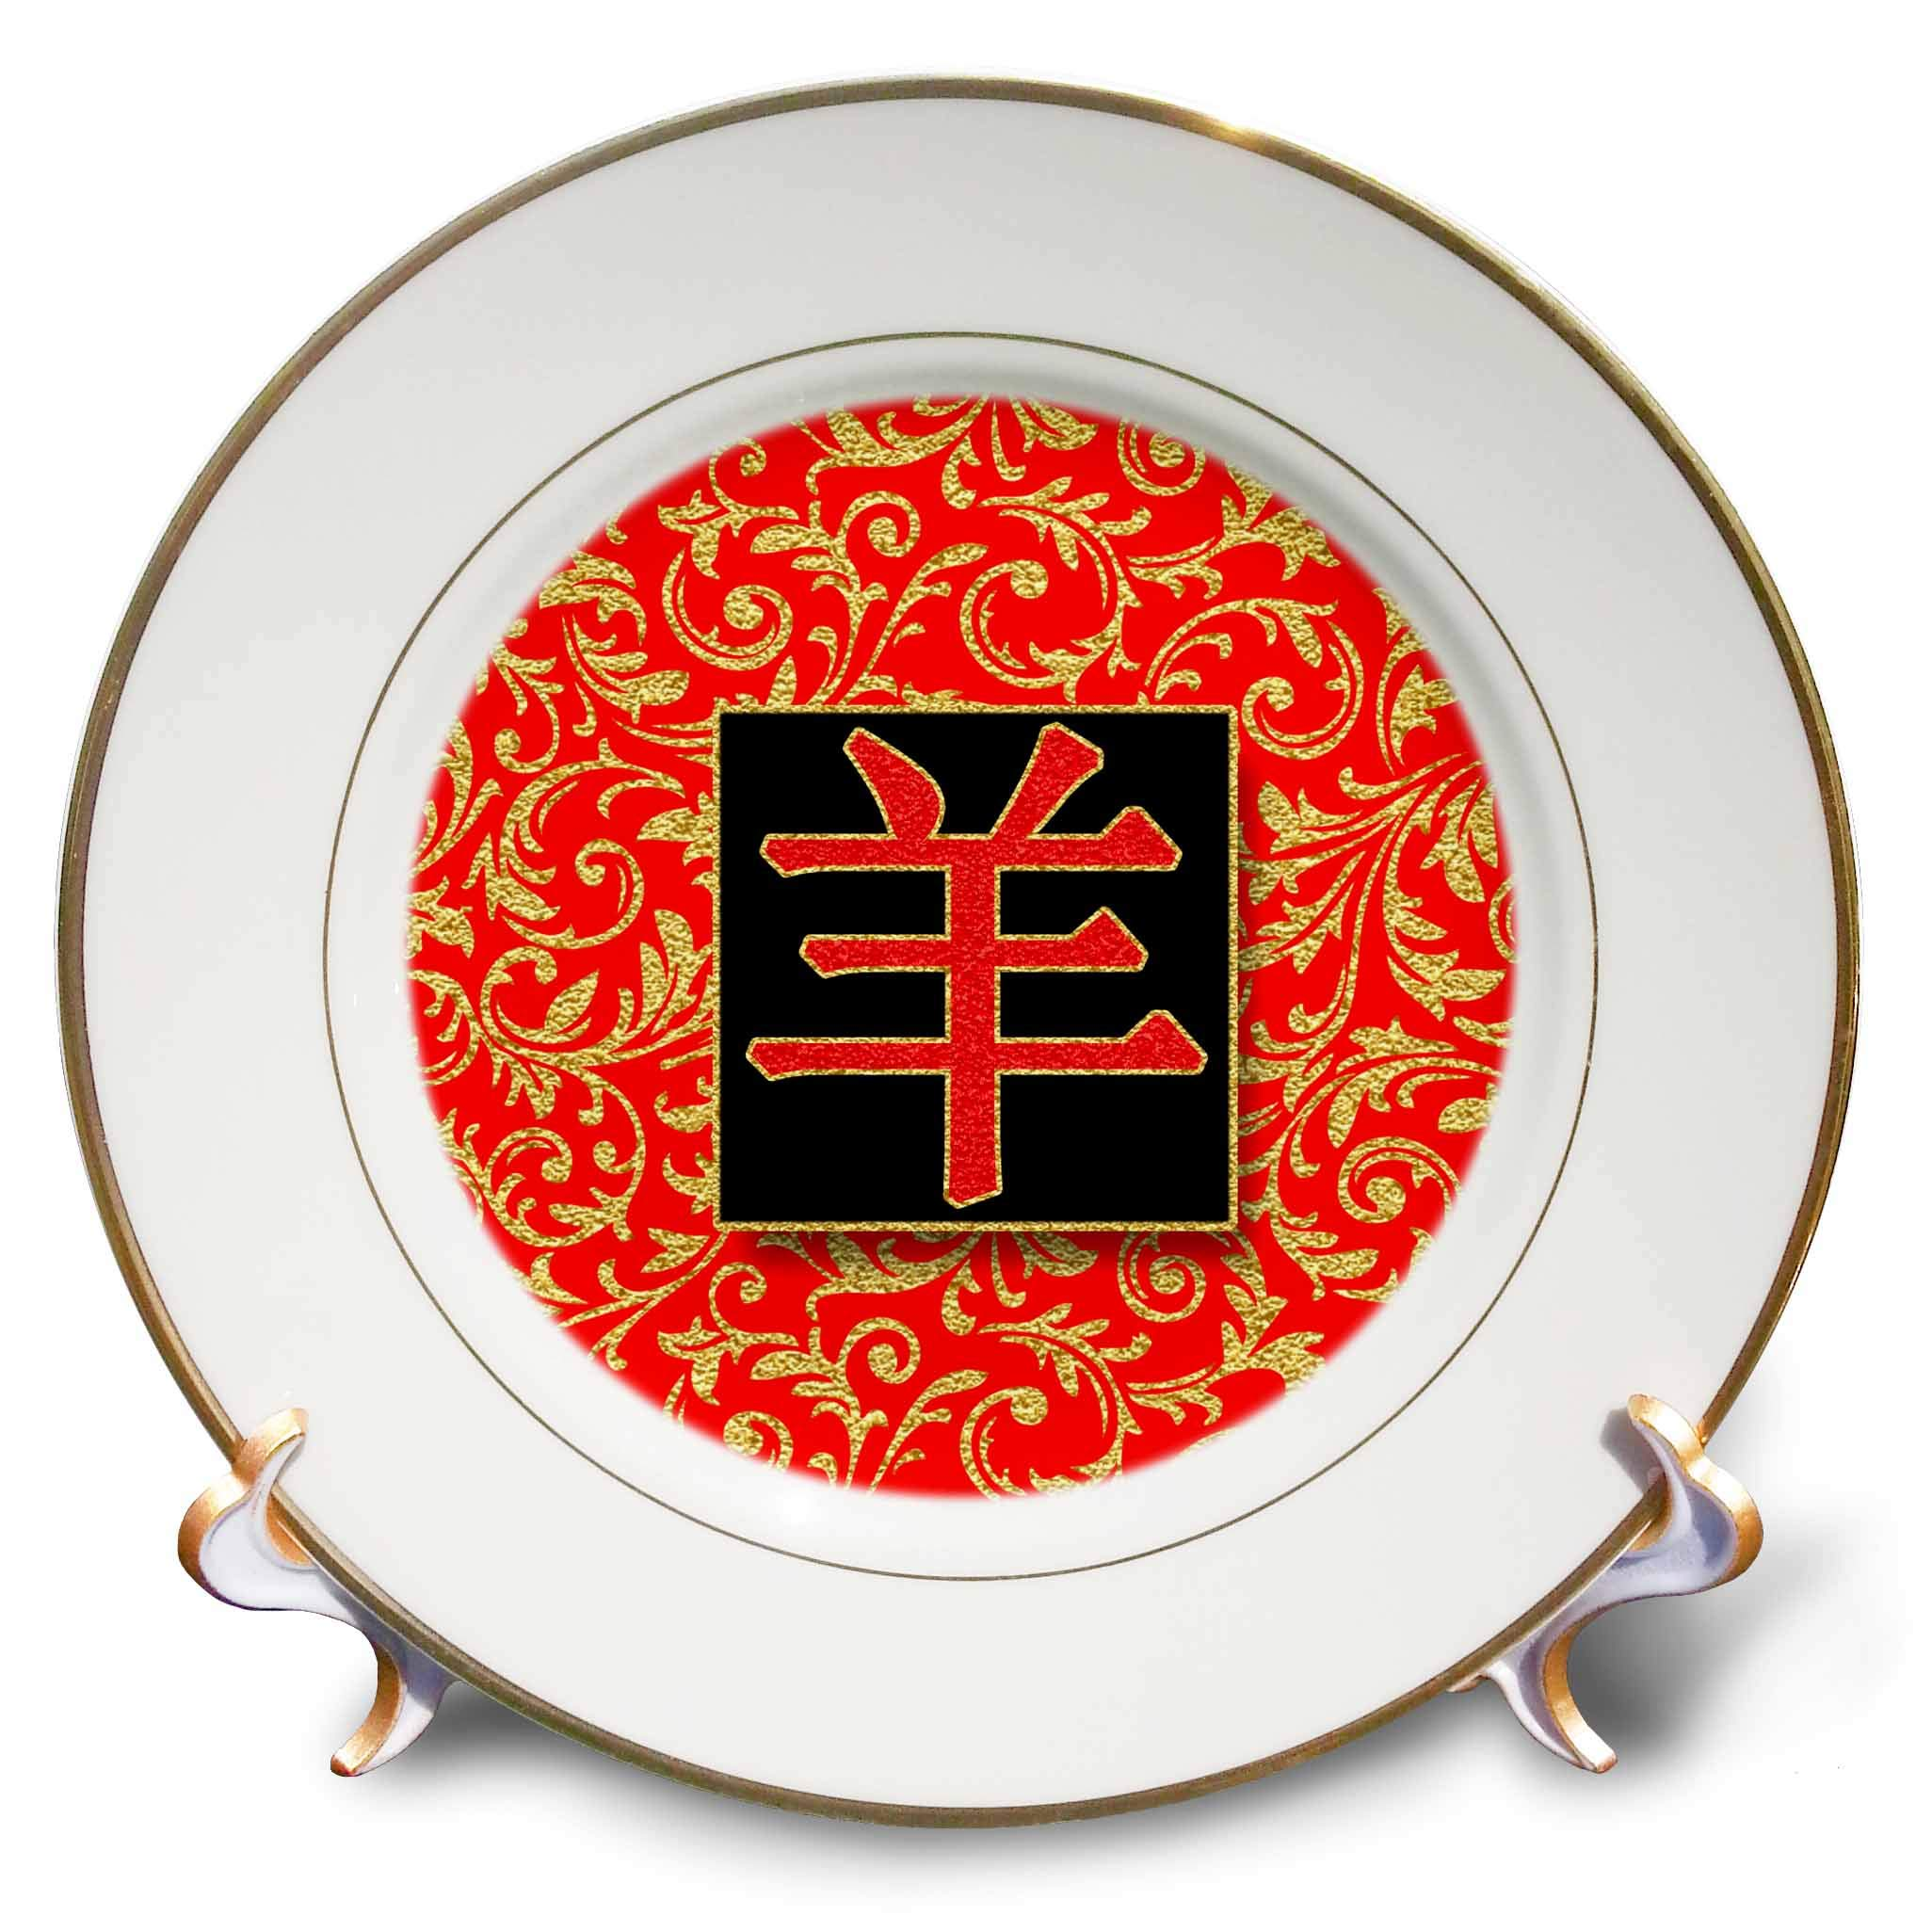 3dRose Doreen Erhardt Asian Collection - Chinese Zodiac Animal Character for Year of The Sheep Red and Gold - 8 inch Porcelain Plate (cp_294976_1)